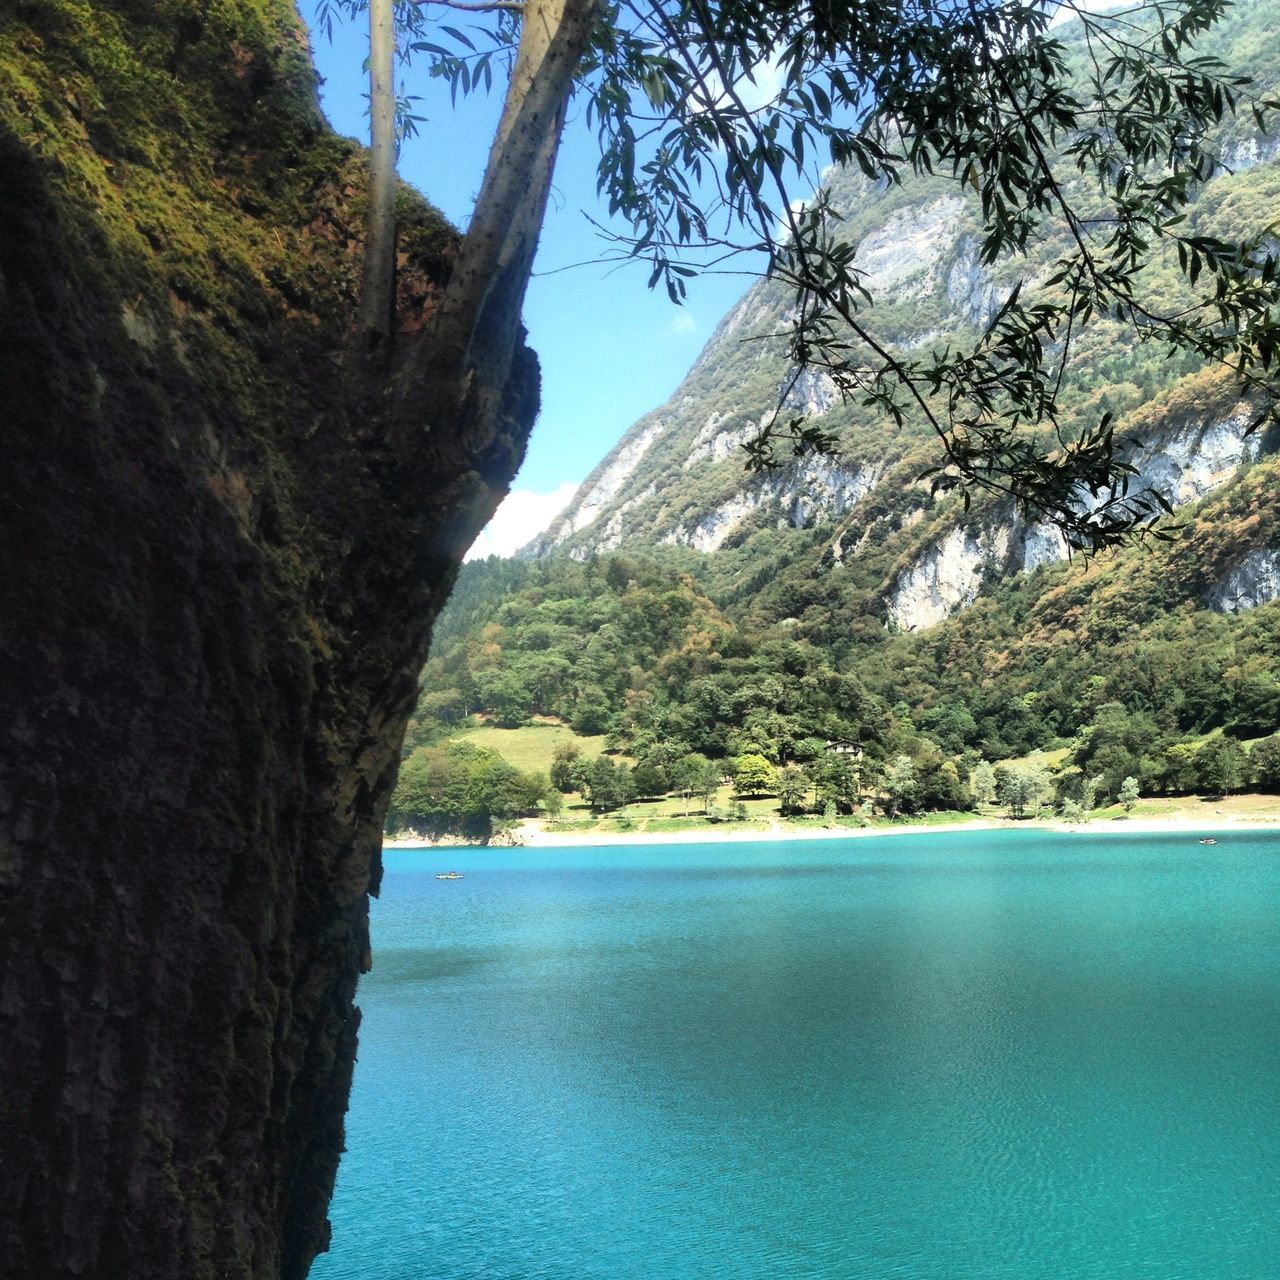 tree, beauty in nature, mountain, water, nature, tranquil scene, day, no people, scenics, outdoors, tranquility, scenery, sky